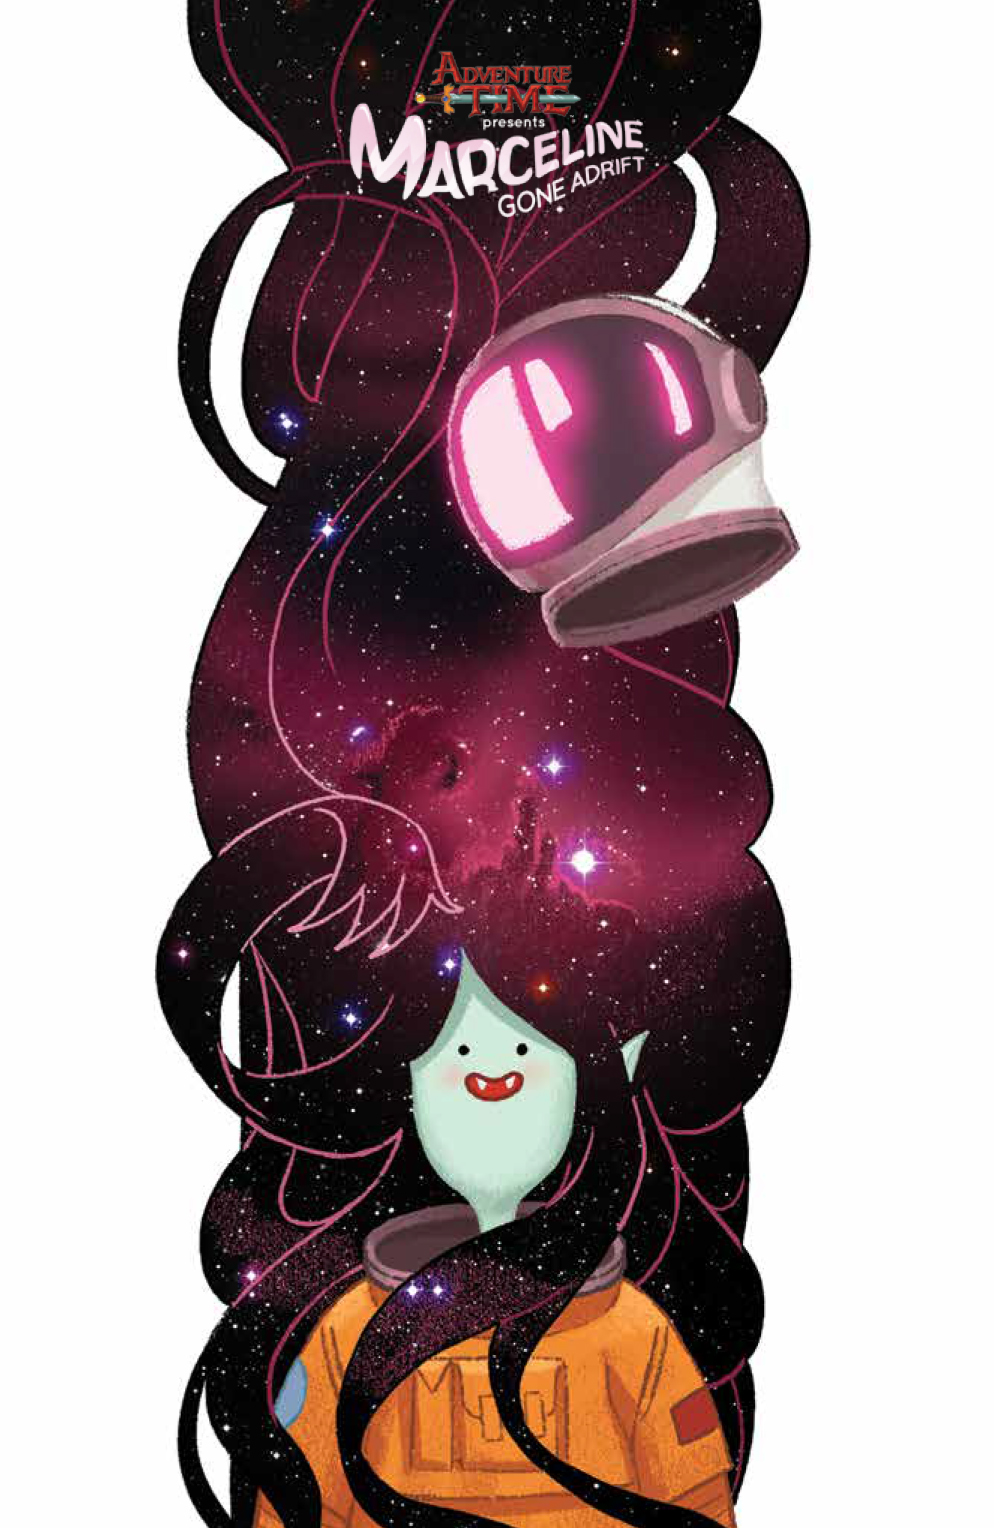 Preview: Adventure Time: Marceline Gone Adrift #6 (of 6) - All-Comic.com